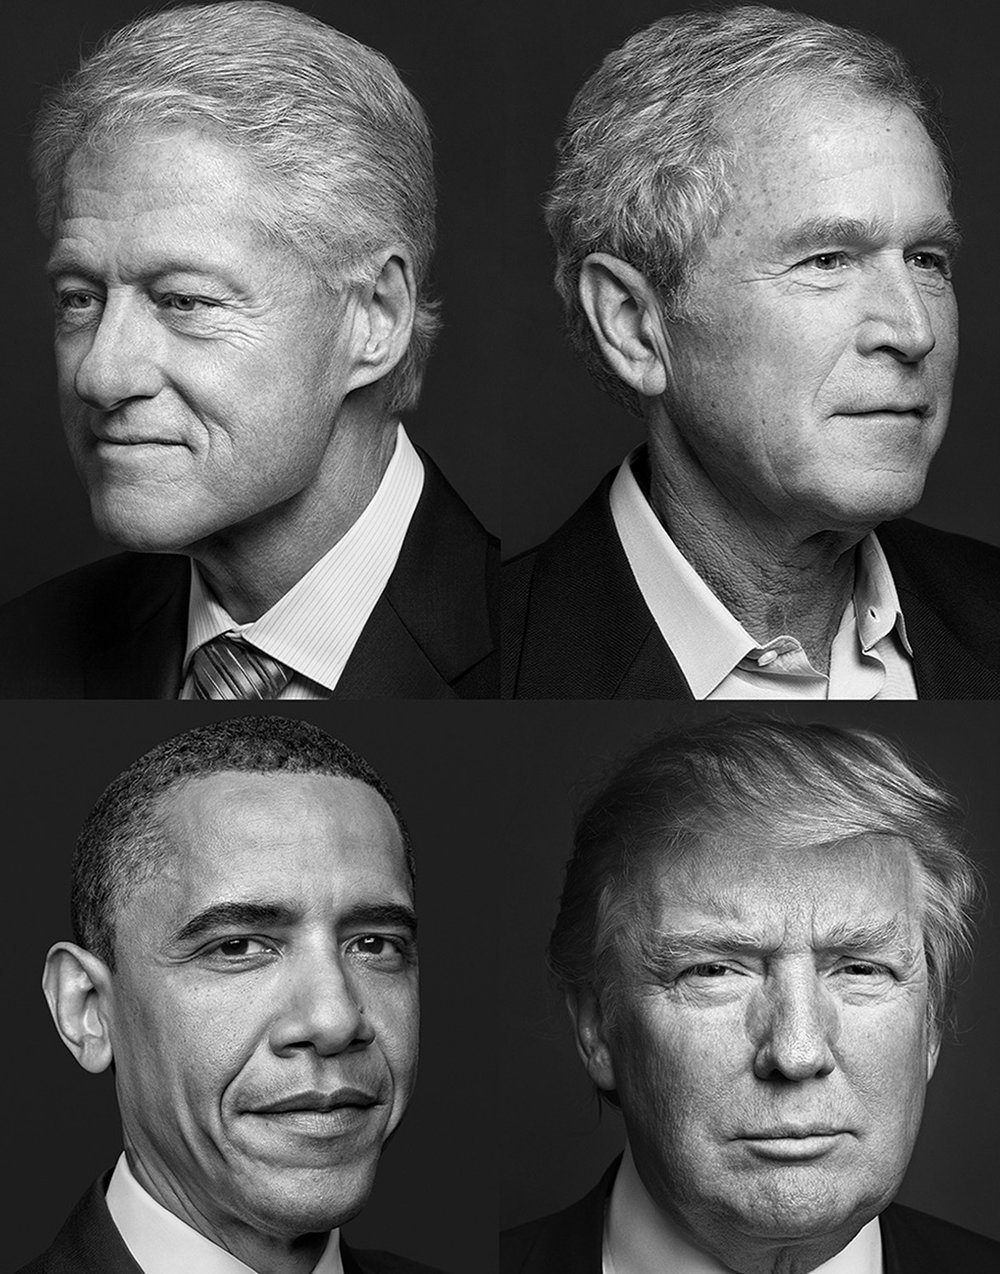 Four+Presidents+Comp_11_14.jpg